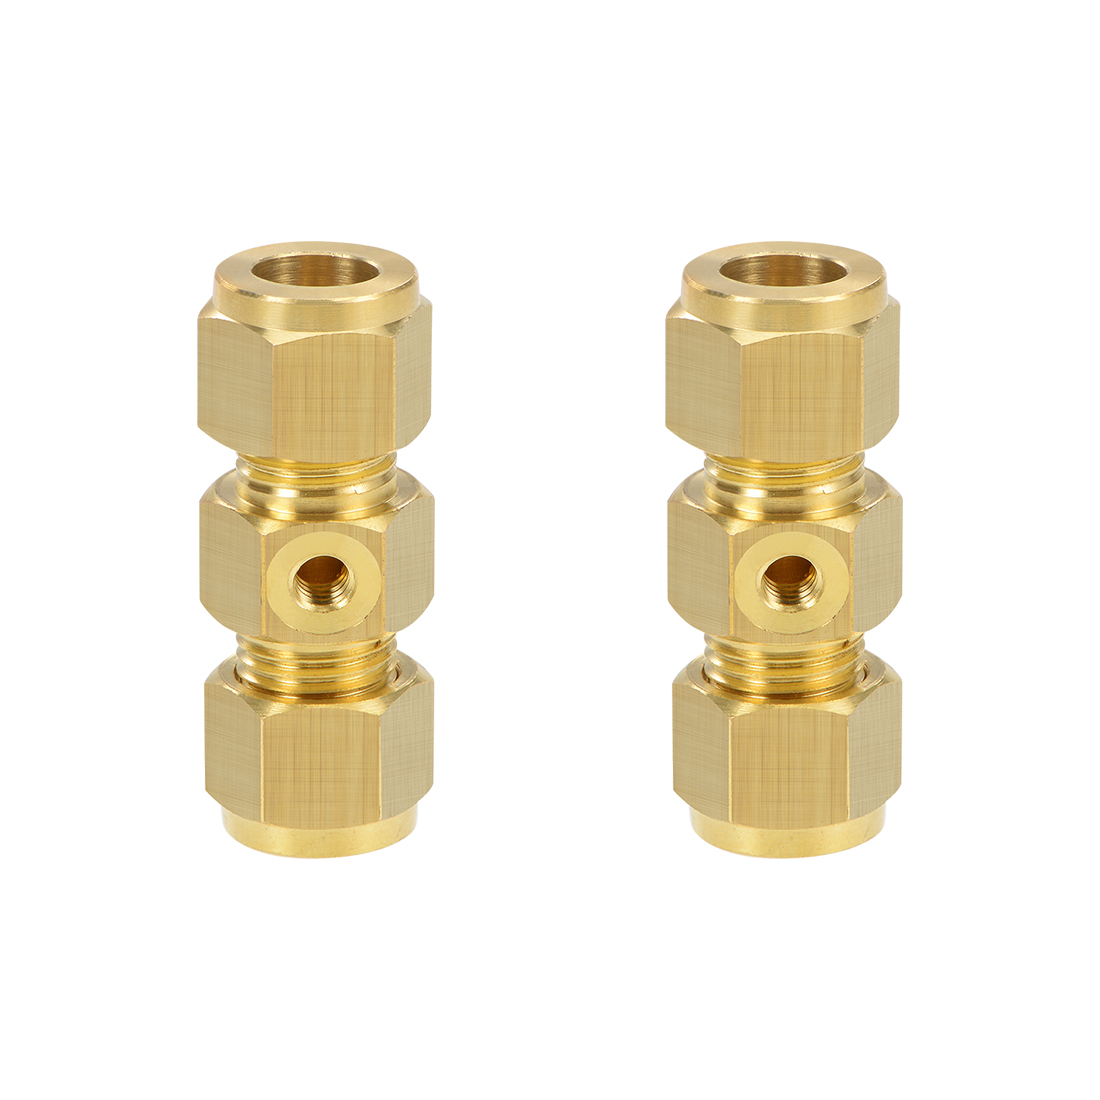 Brass Compression Tube Fitting 10mm OD UNC 10-24 Nozzle Adapter 2pcs